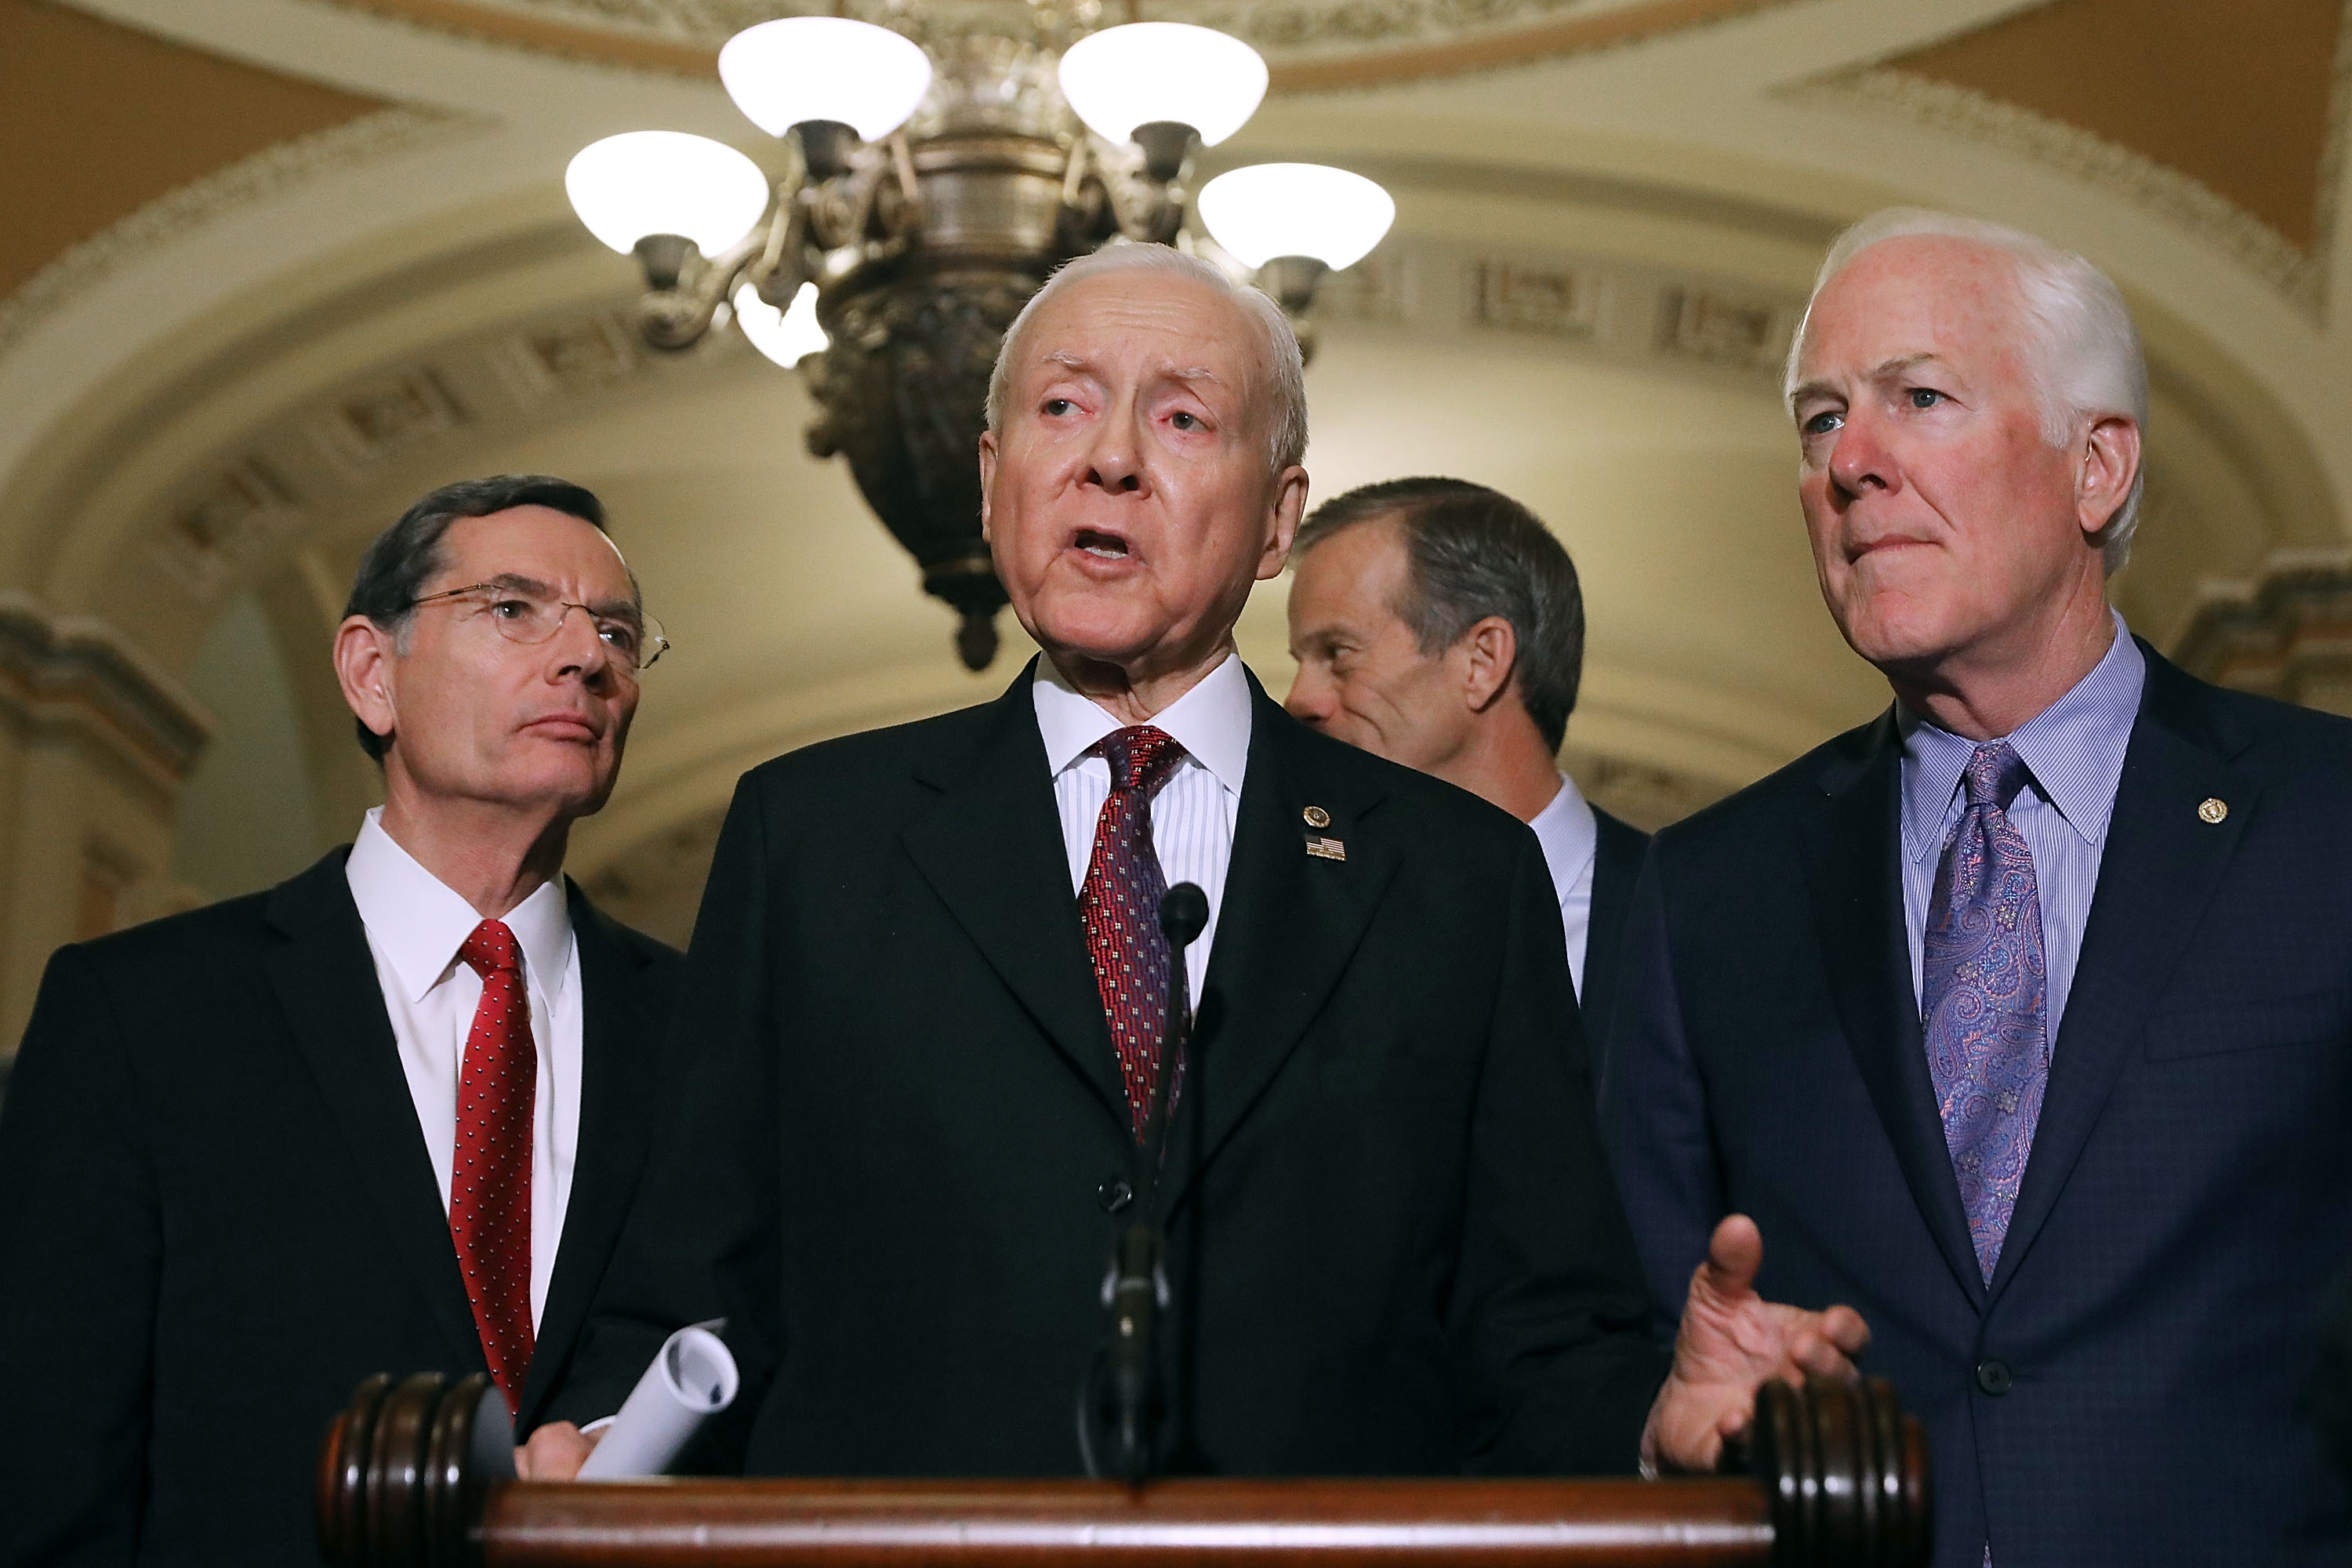 Orrin Hatch just made the Republican agenda startlingly clear